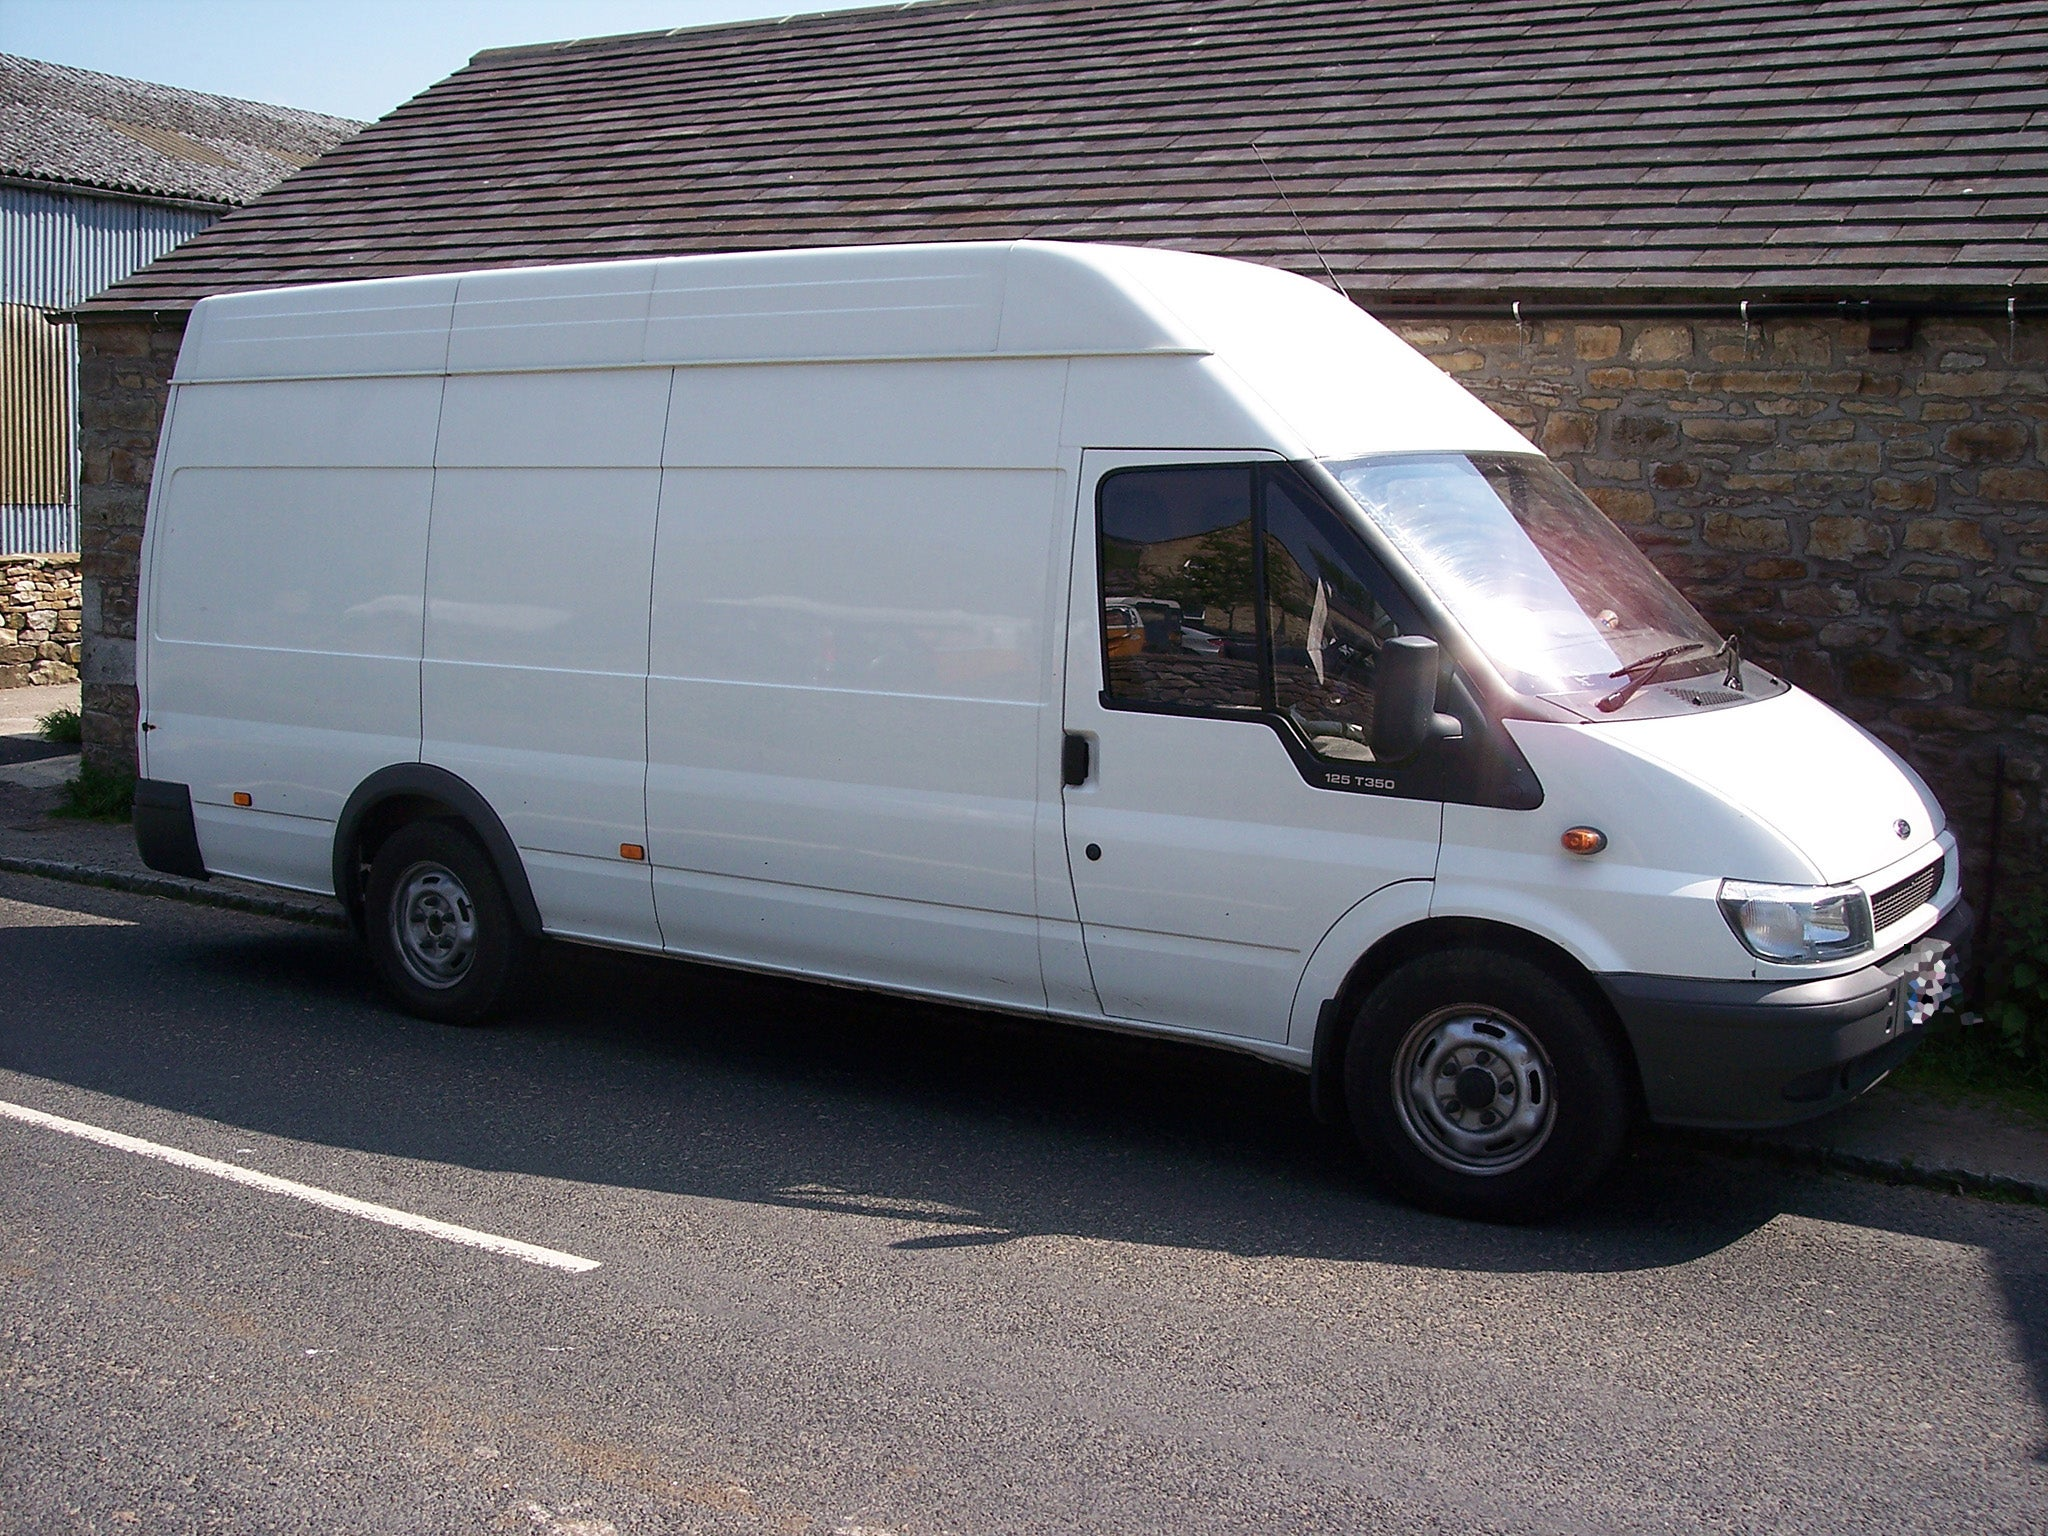 Parents Warned Of Man In White Van Who Tried To Snatch